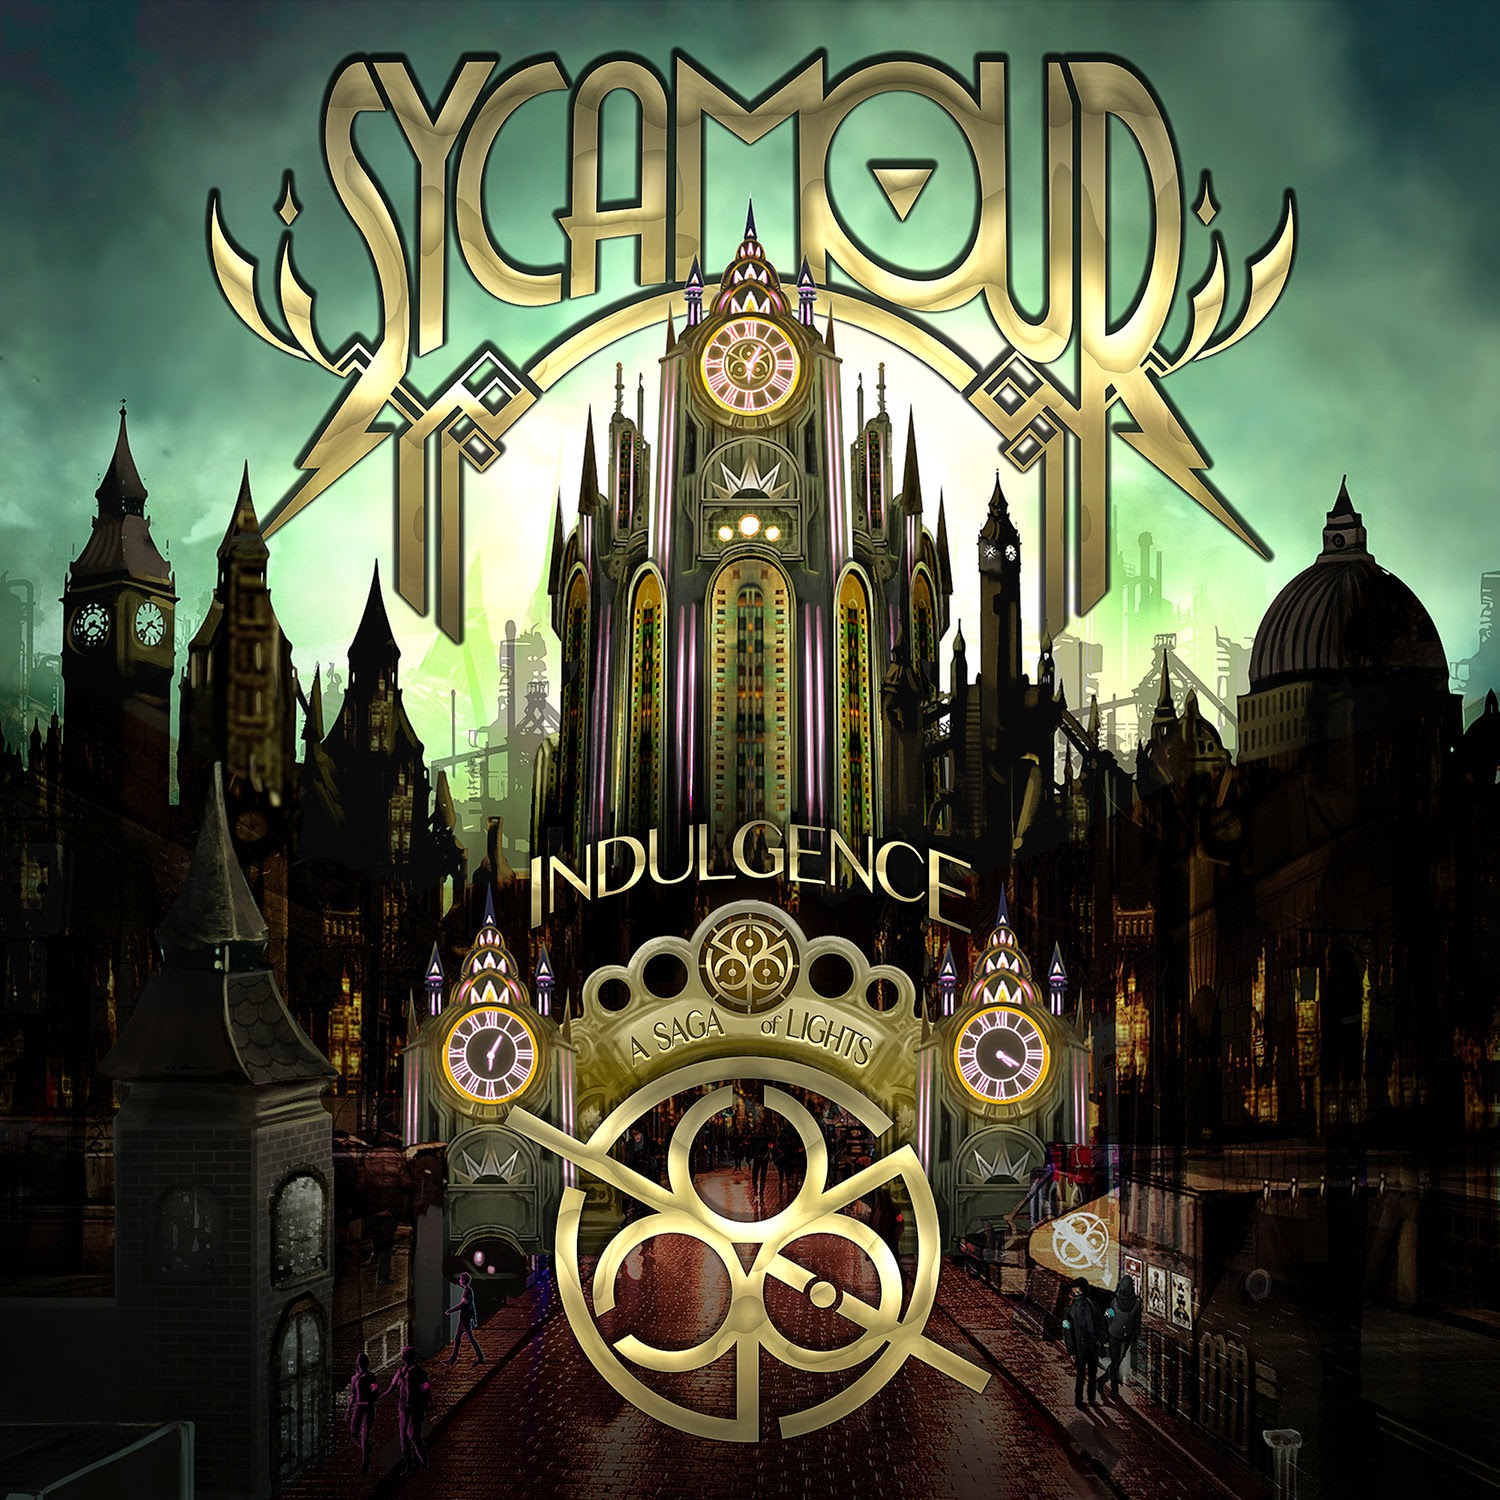 SycAmour - Indulgence: A Saga Of Lights (2014)